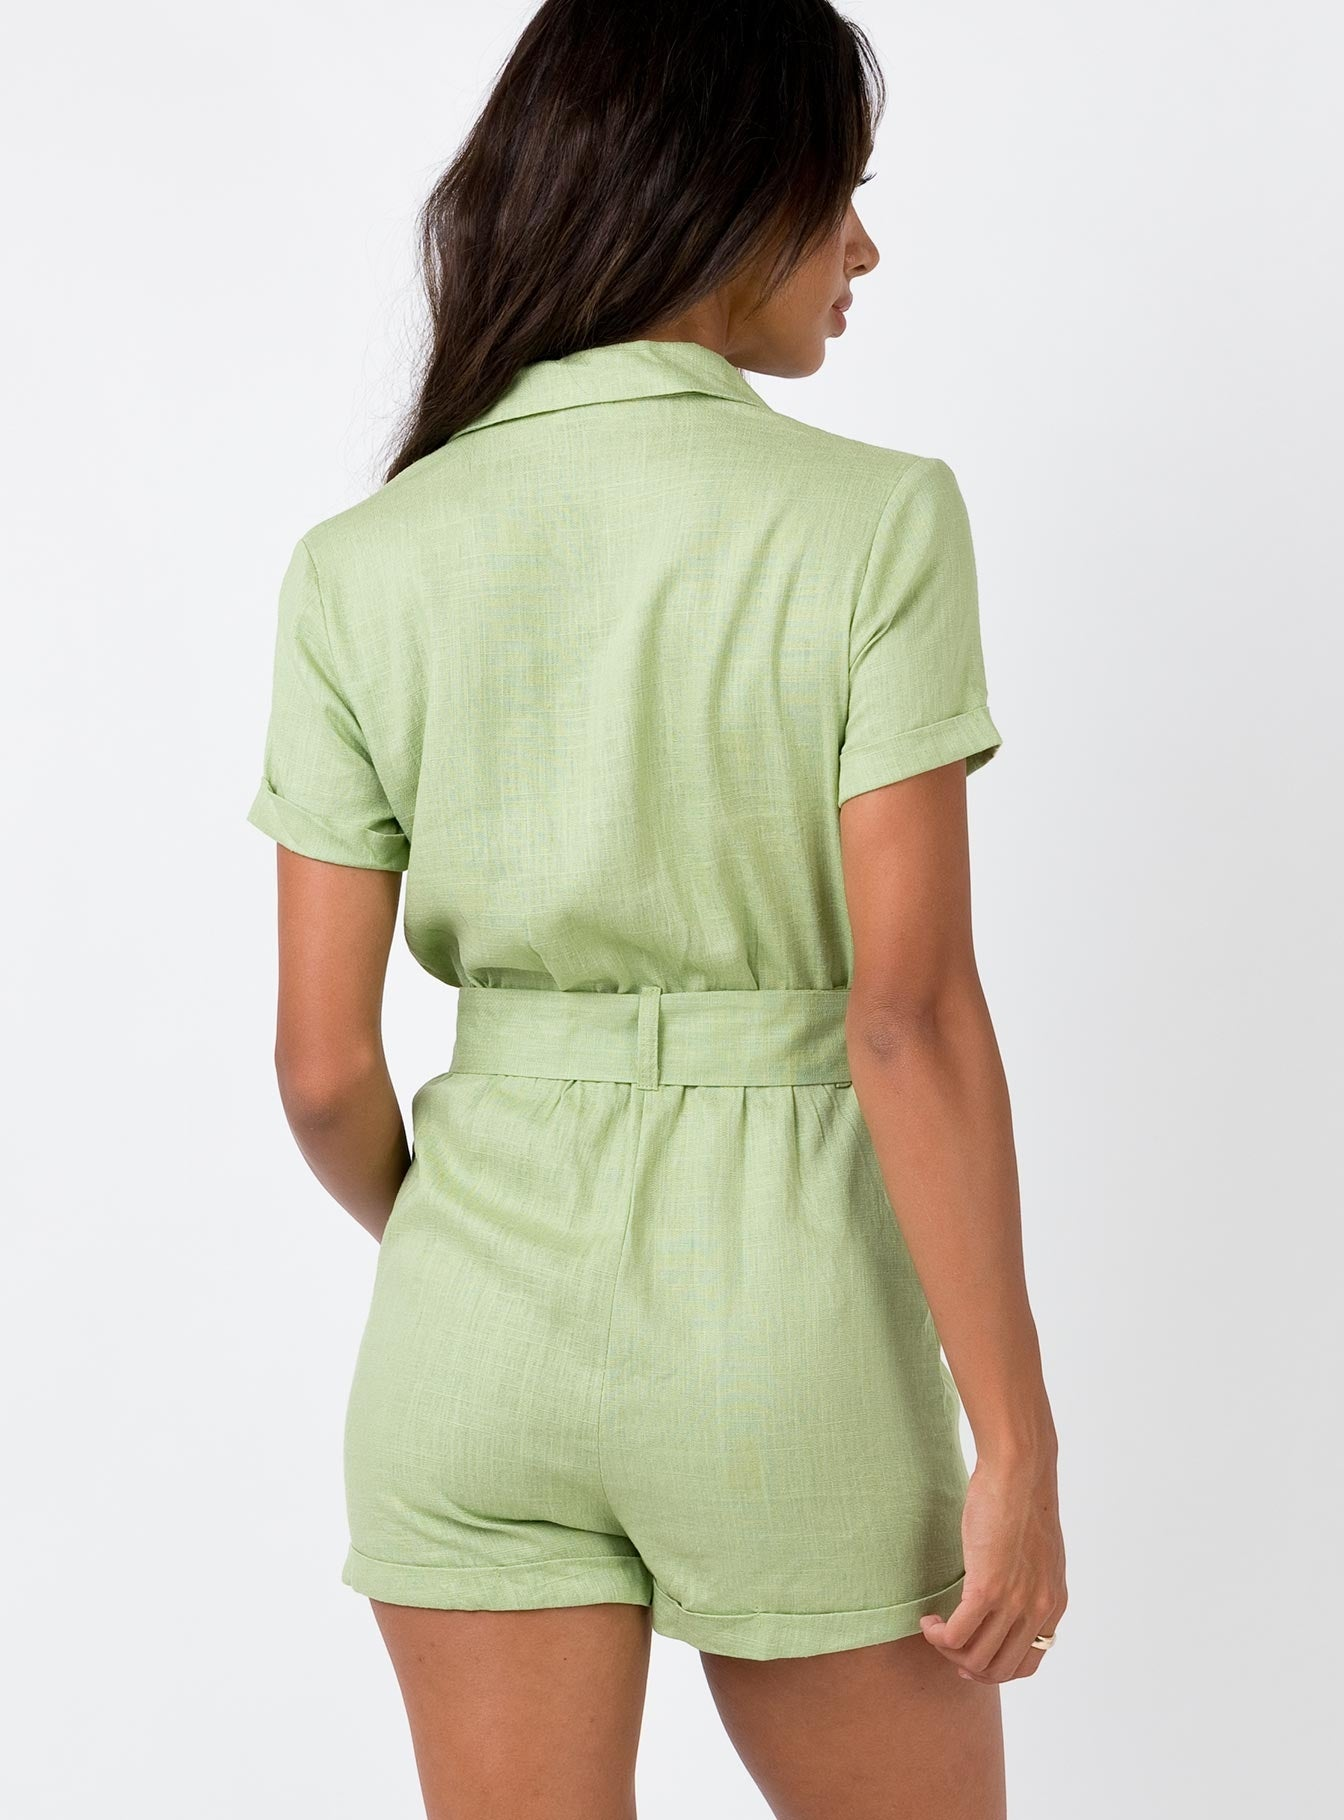 The Vinz Playsuit Mint